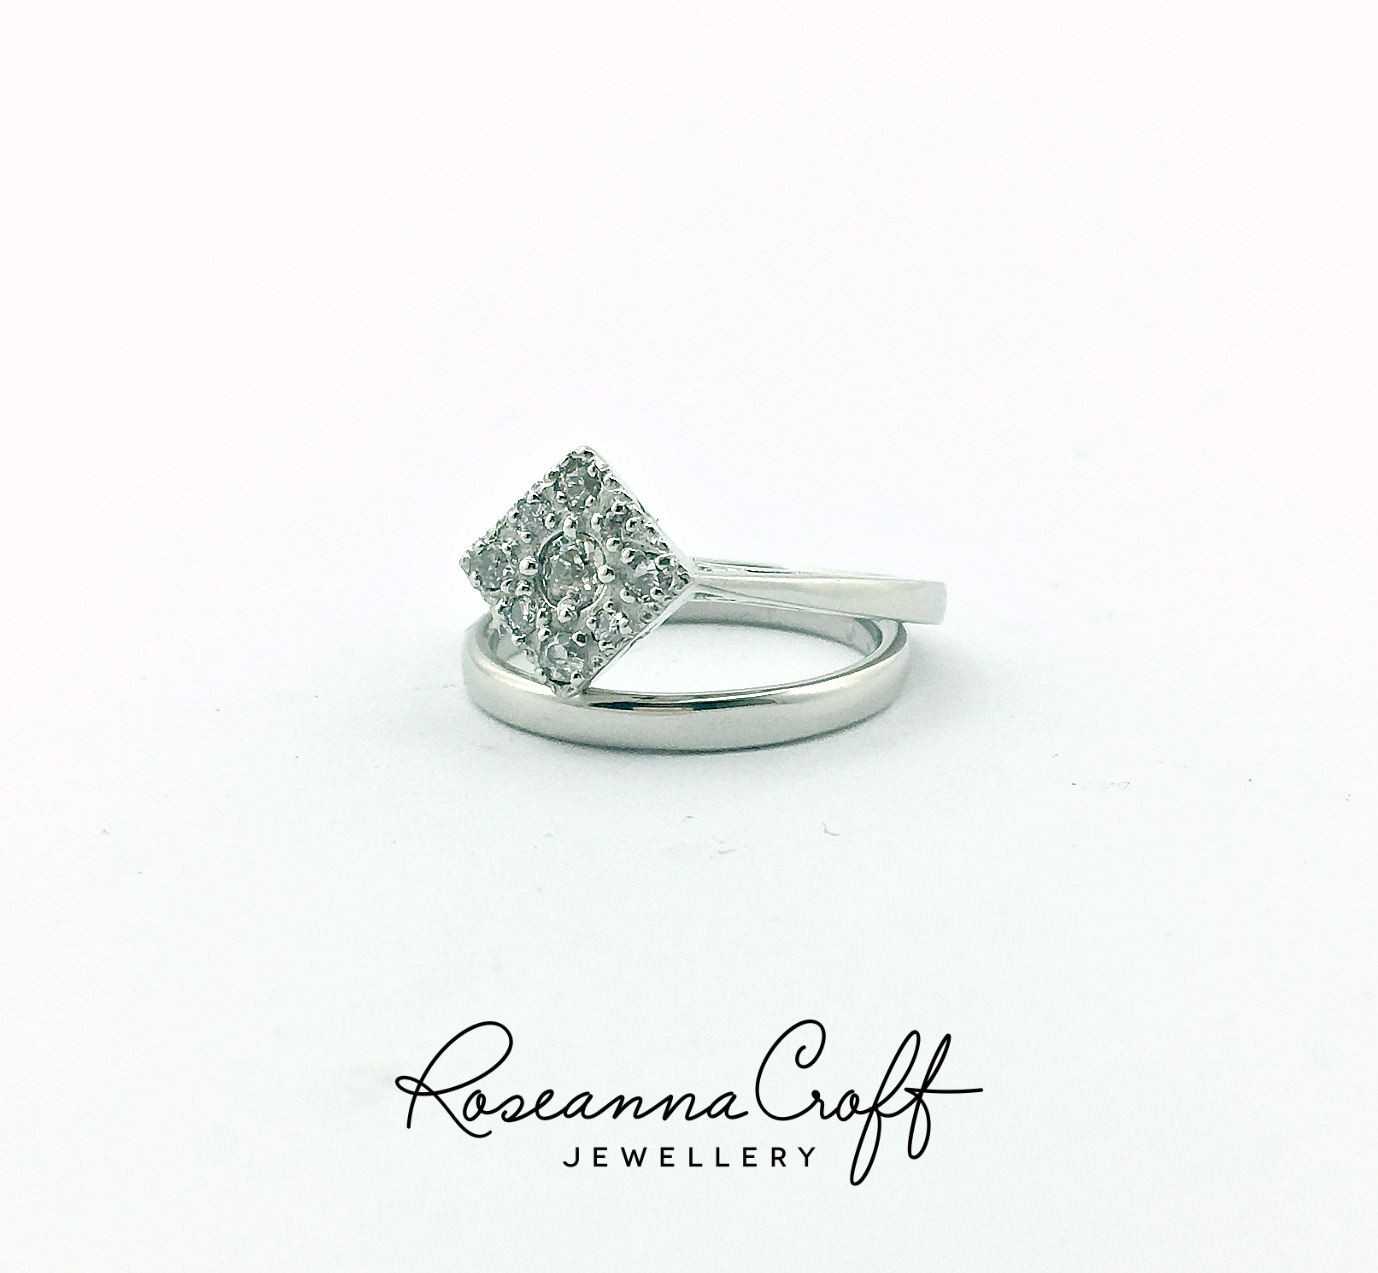 Art Deco Engagement Ring Redesign by Roseanna Croft Jewellery